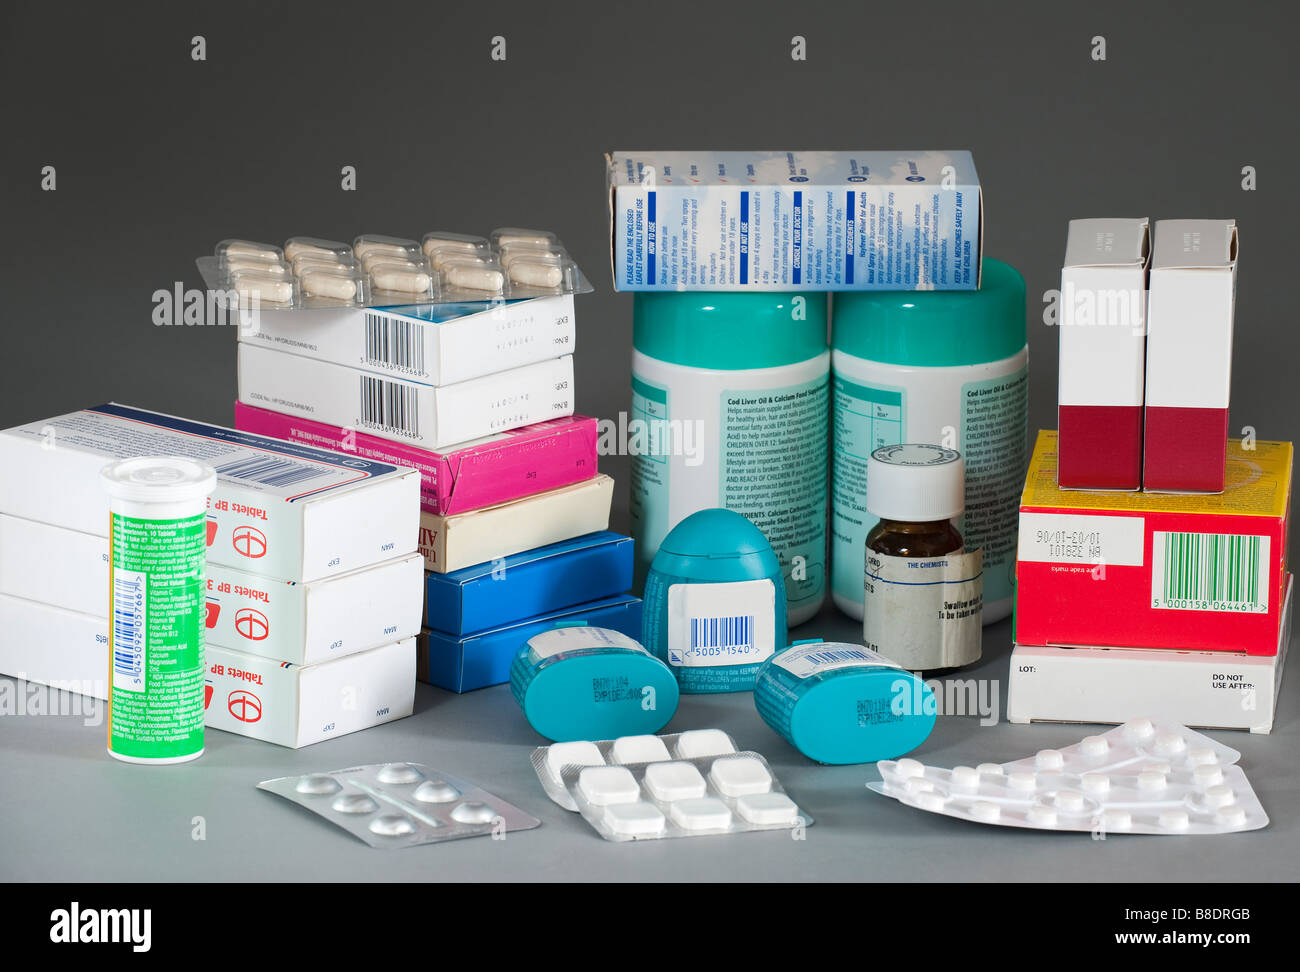 Mixed containers of medicines - Stock Image